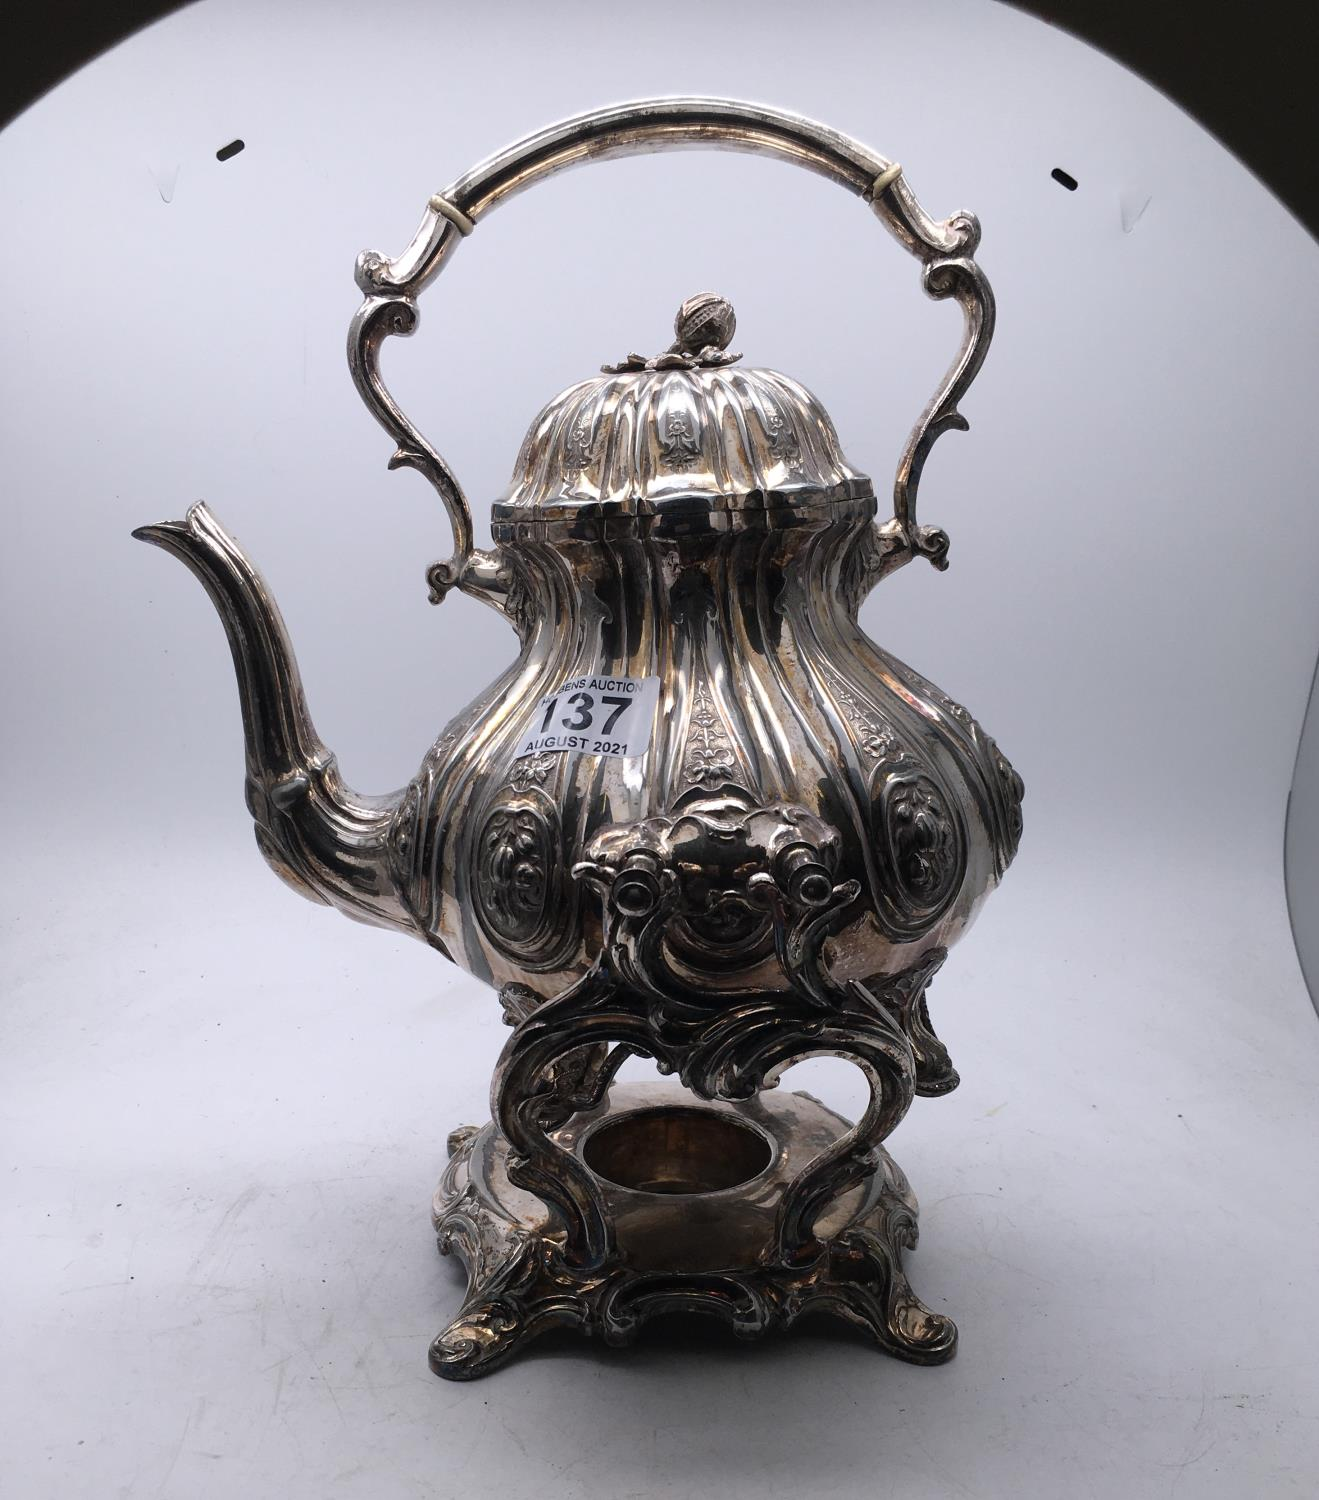 Silver plated Victorian Rococo design spirit kettle on stand, makers mark to base Shaw and Fisher,